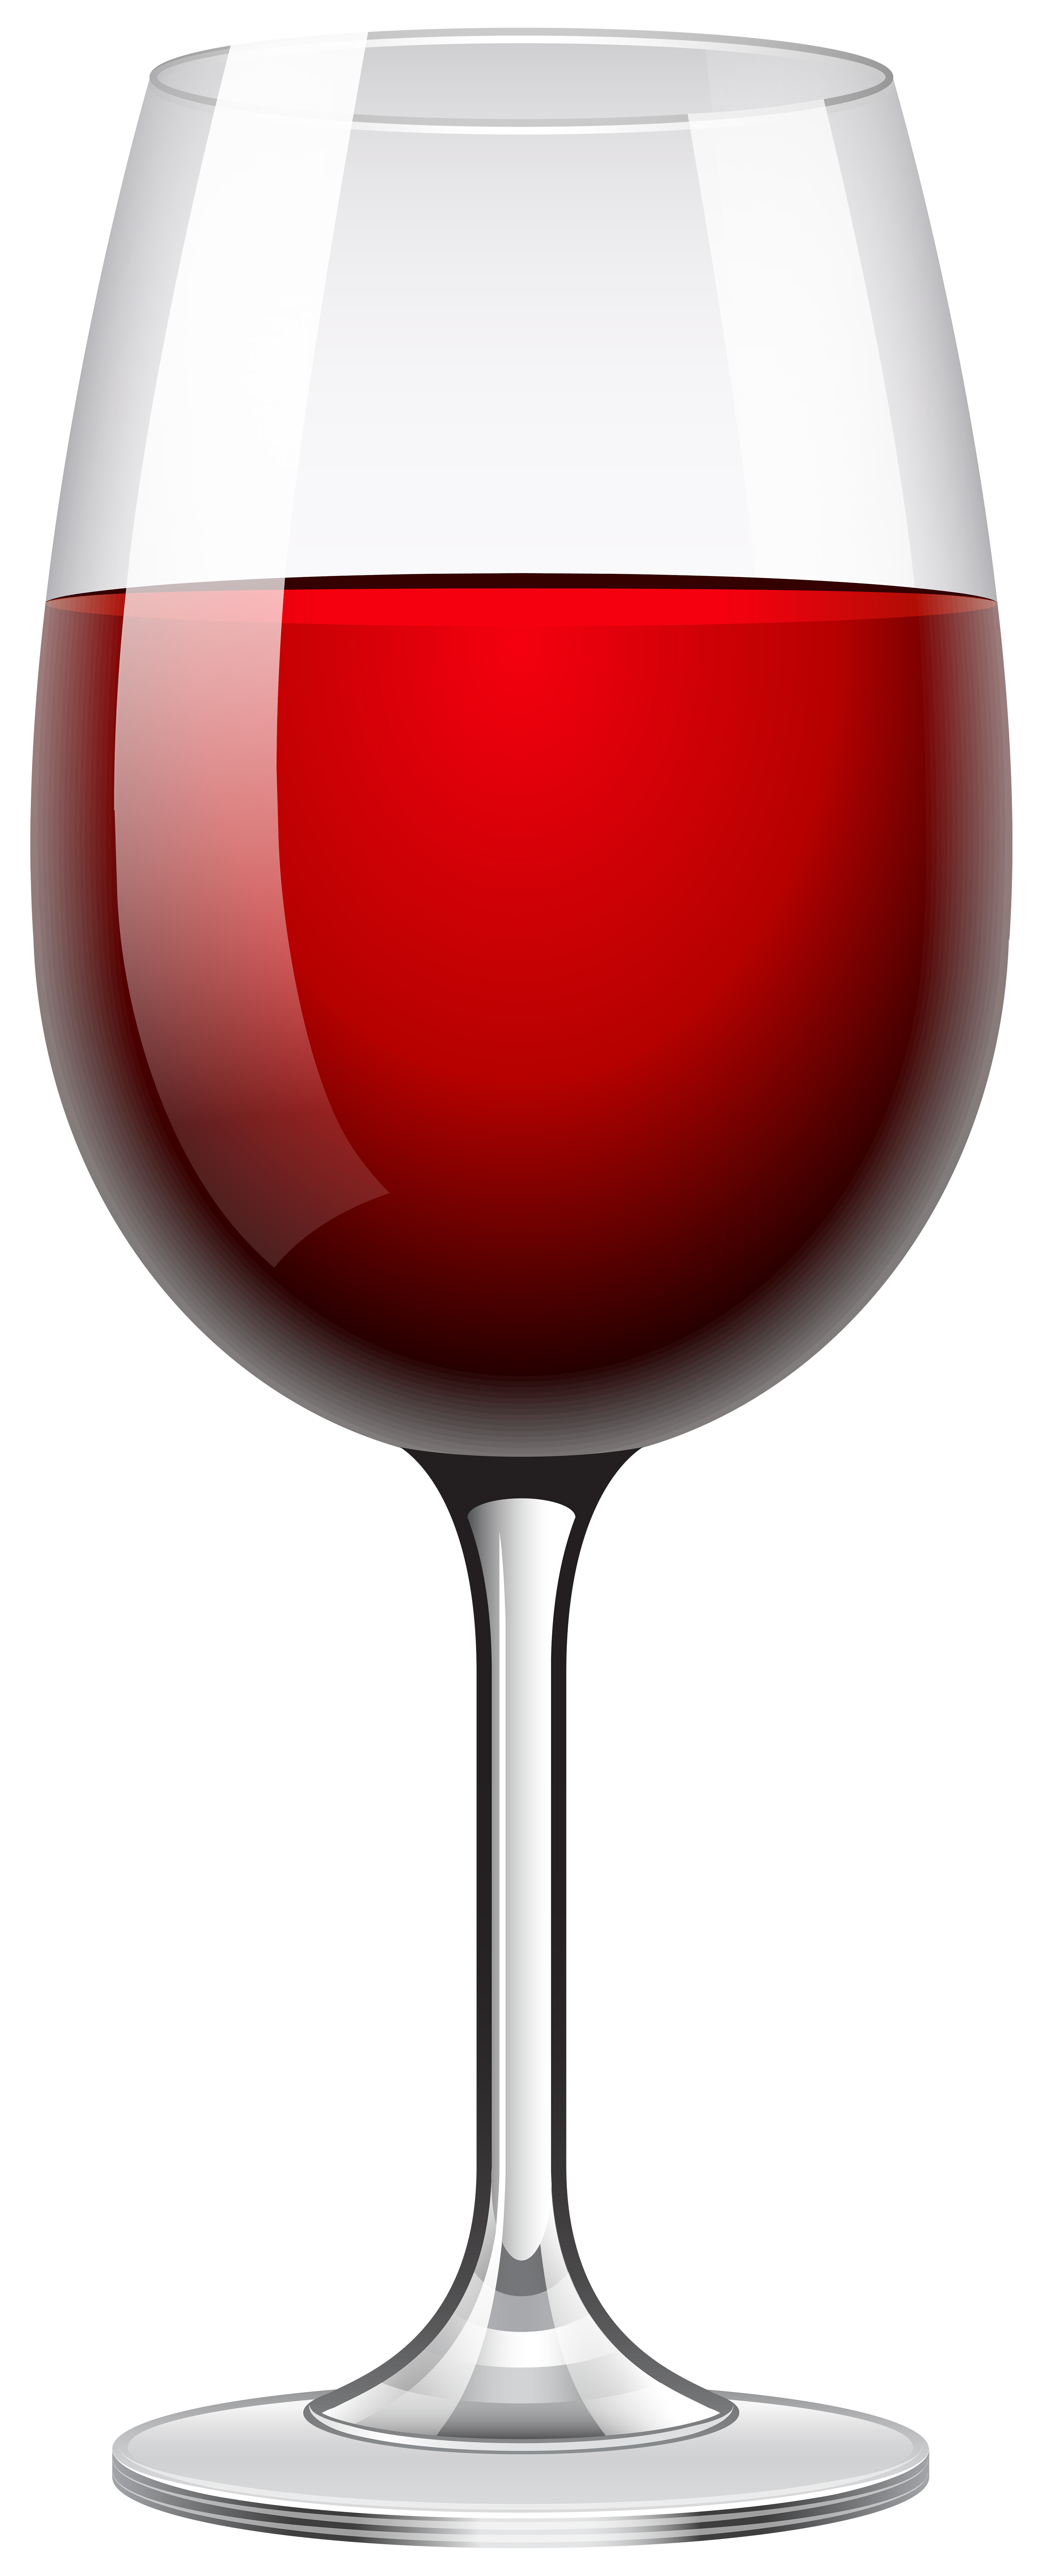 Hearts clipart wine. Red glass transparent png